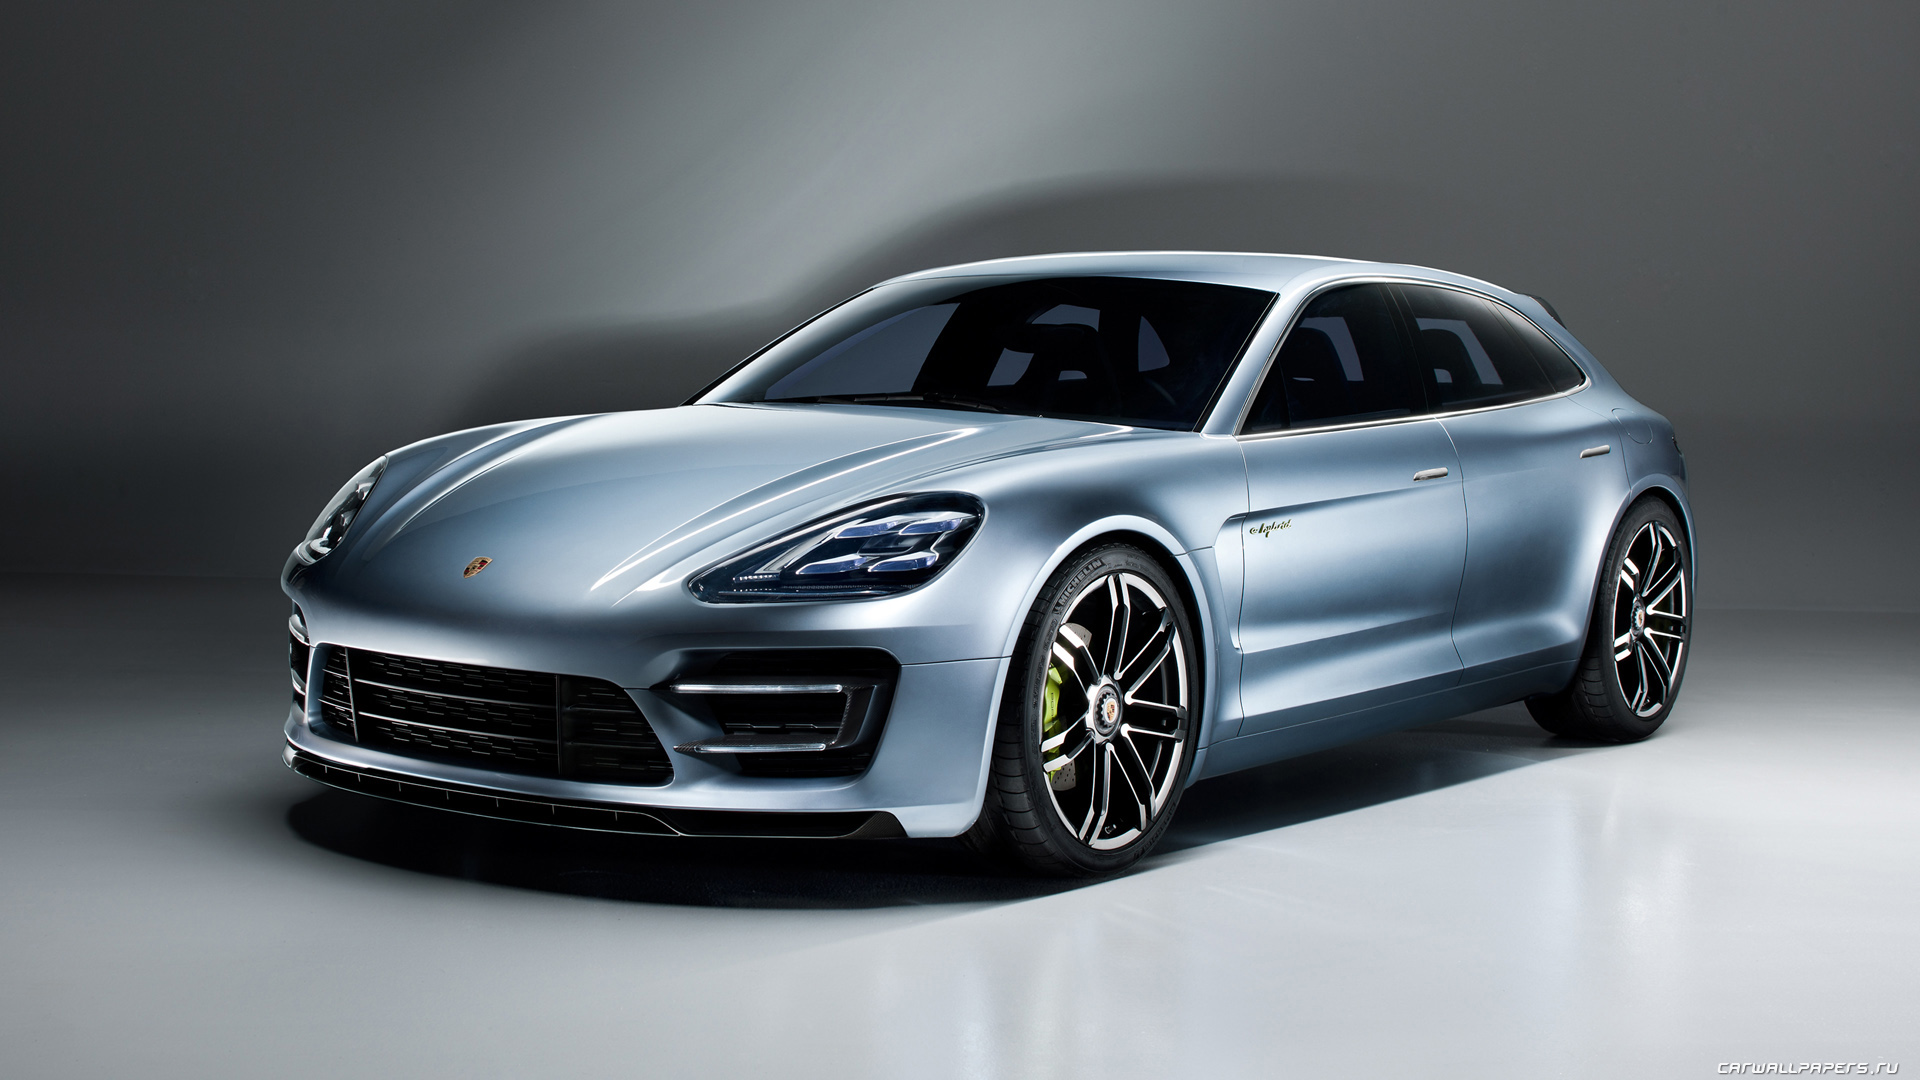 porsche wallpaper panamera Concept HD Wallpapers Desktop 1920x1080